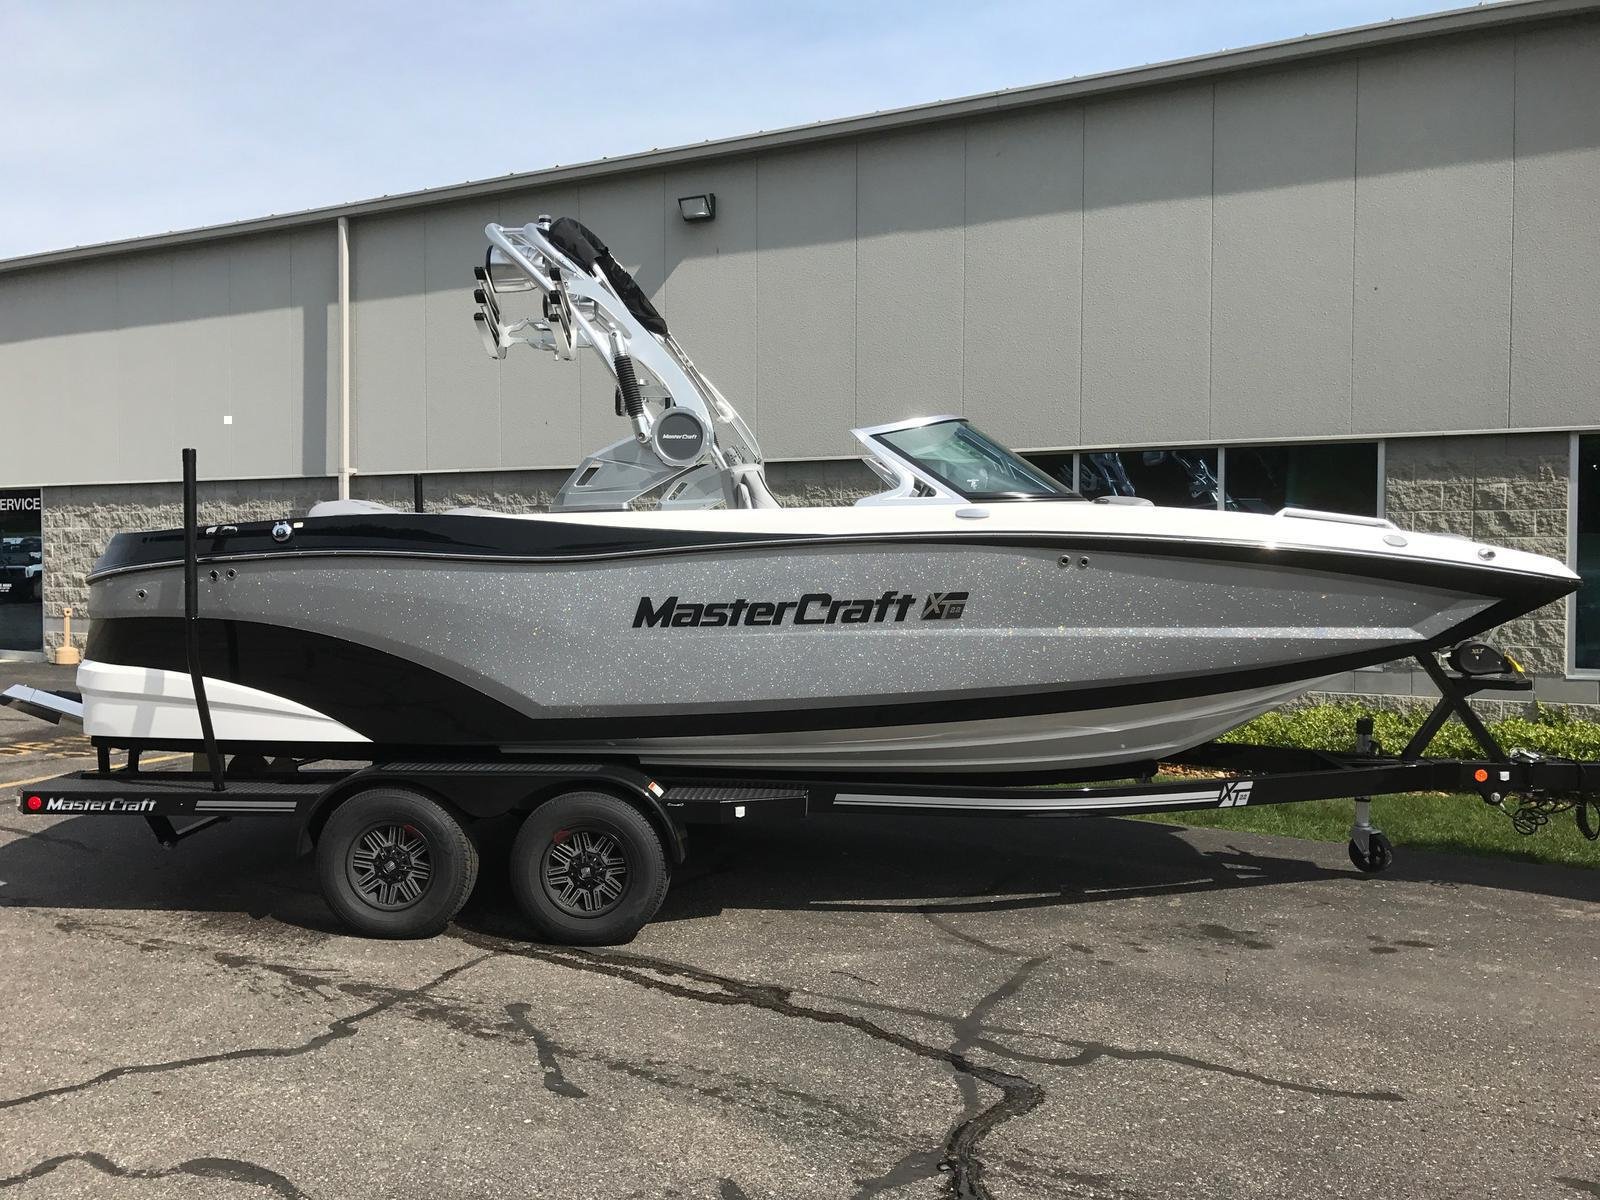 2018 mastercraft xt series xt22 fenton michigan for Action craft boat parts